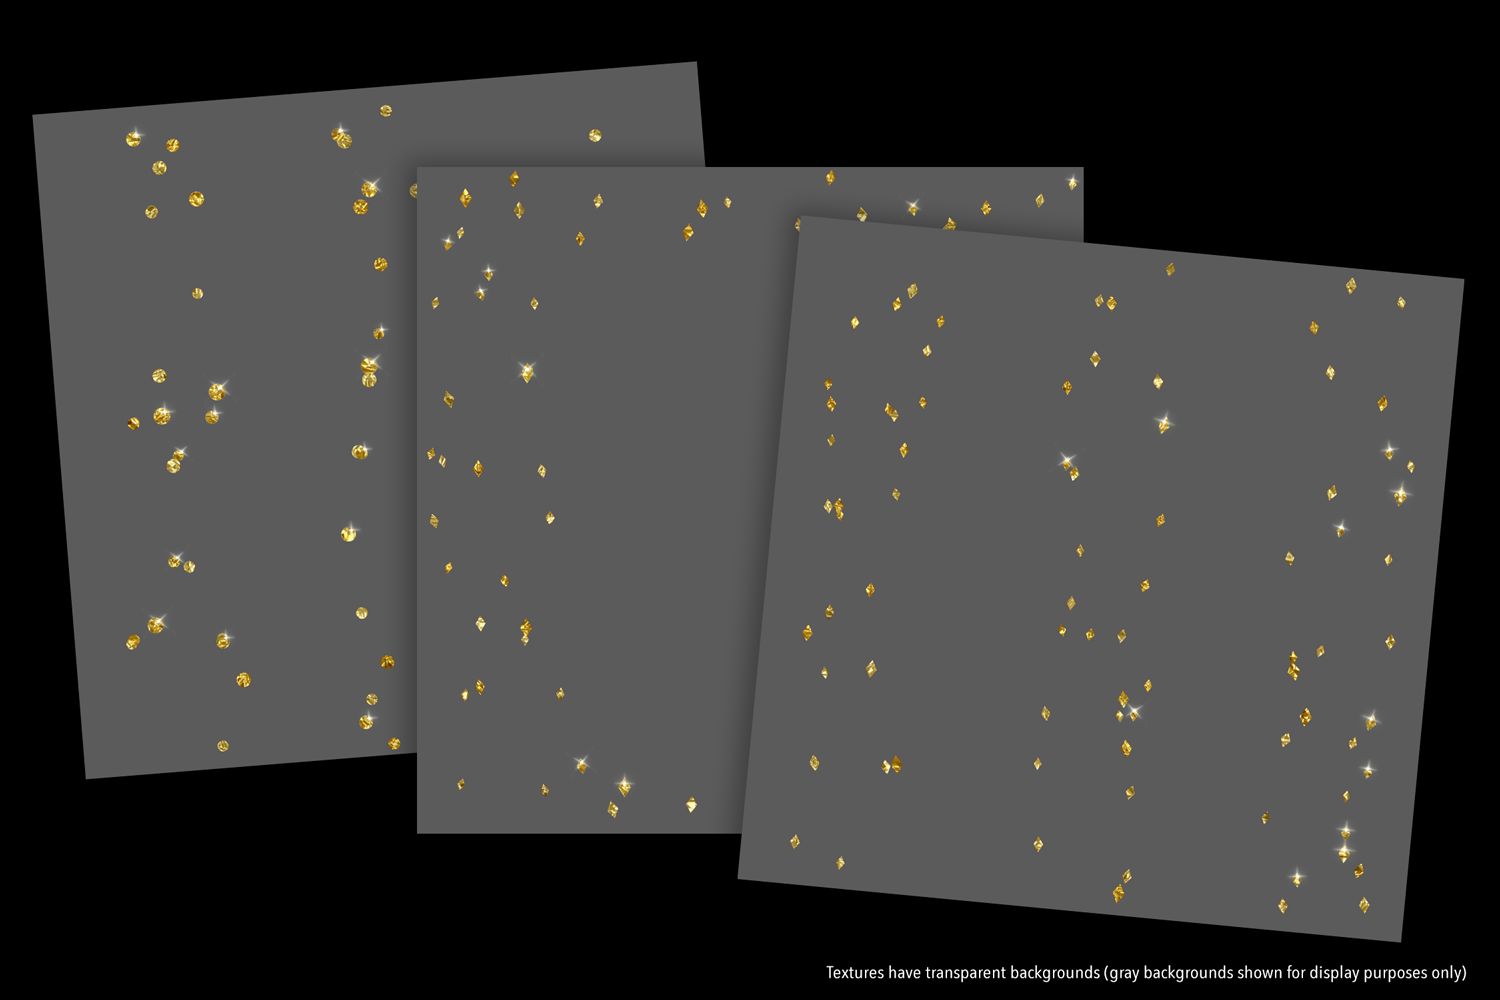 Sparkly Gold Confetti (Sparse) - transparent backgrounds example image 8